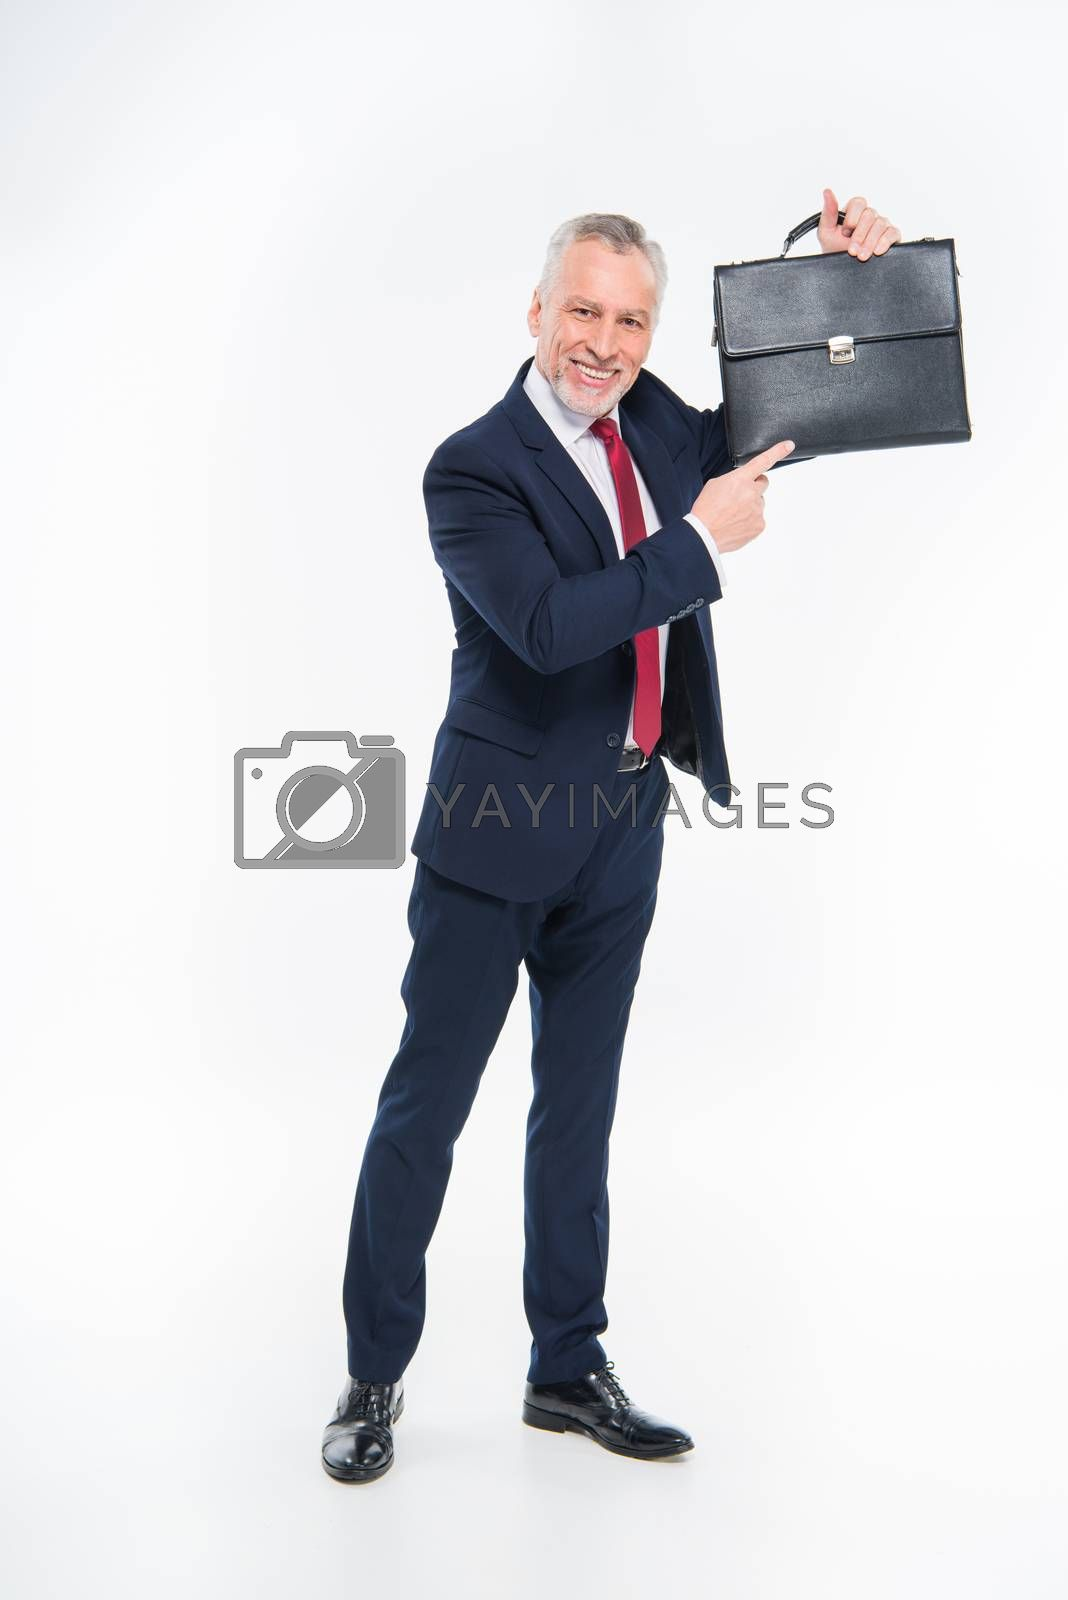 Royalty free image of Businessman pointing at briefcase by LightFieldStudios